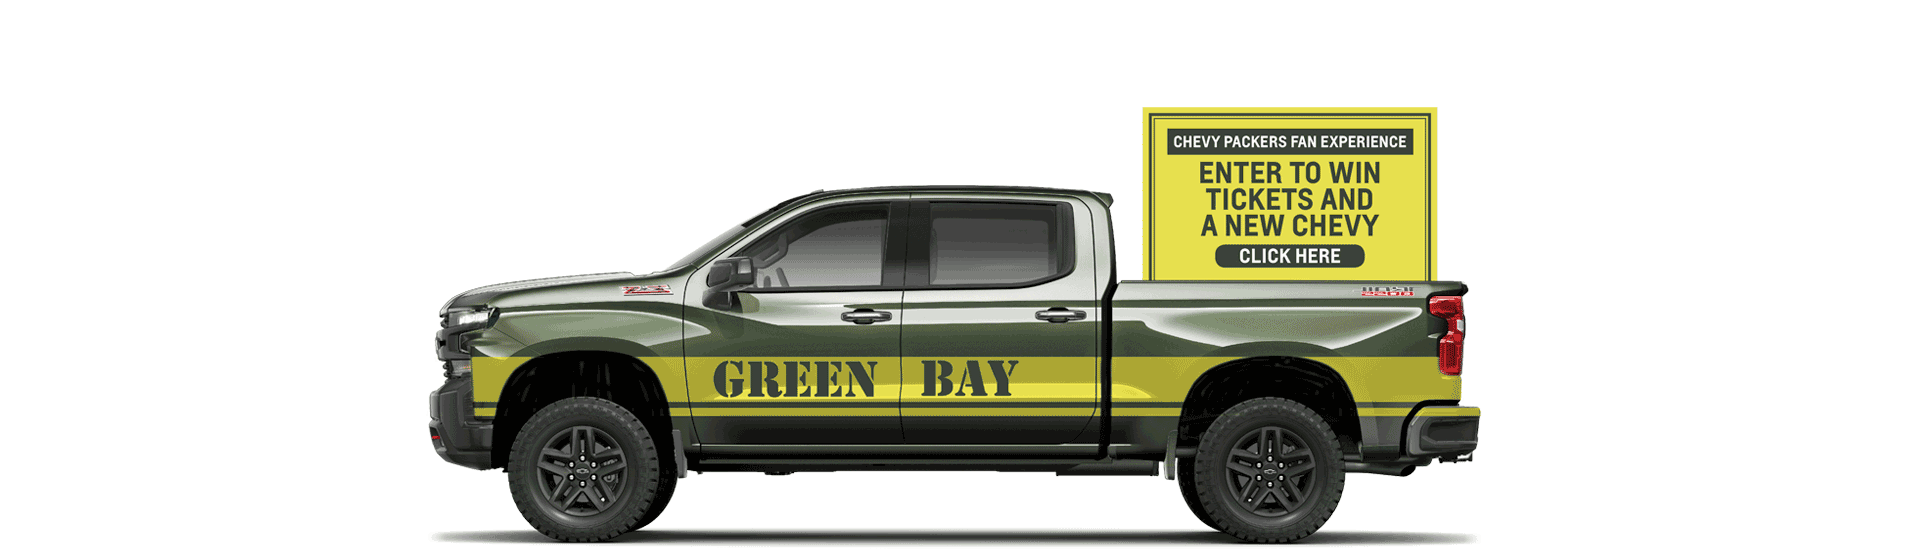 Green Bay Packers Sweepstakes